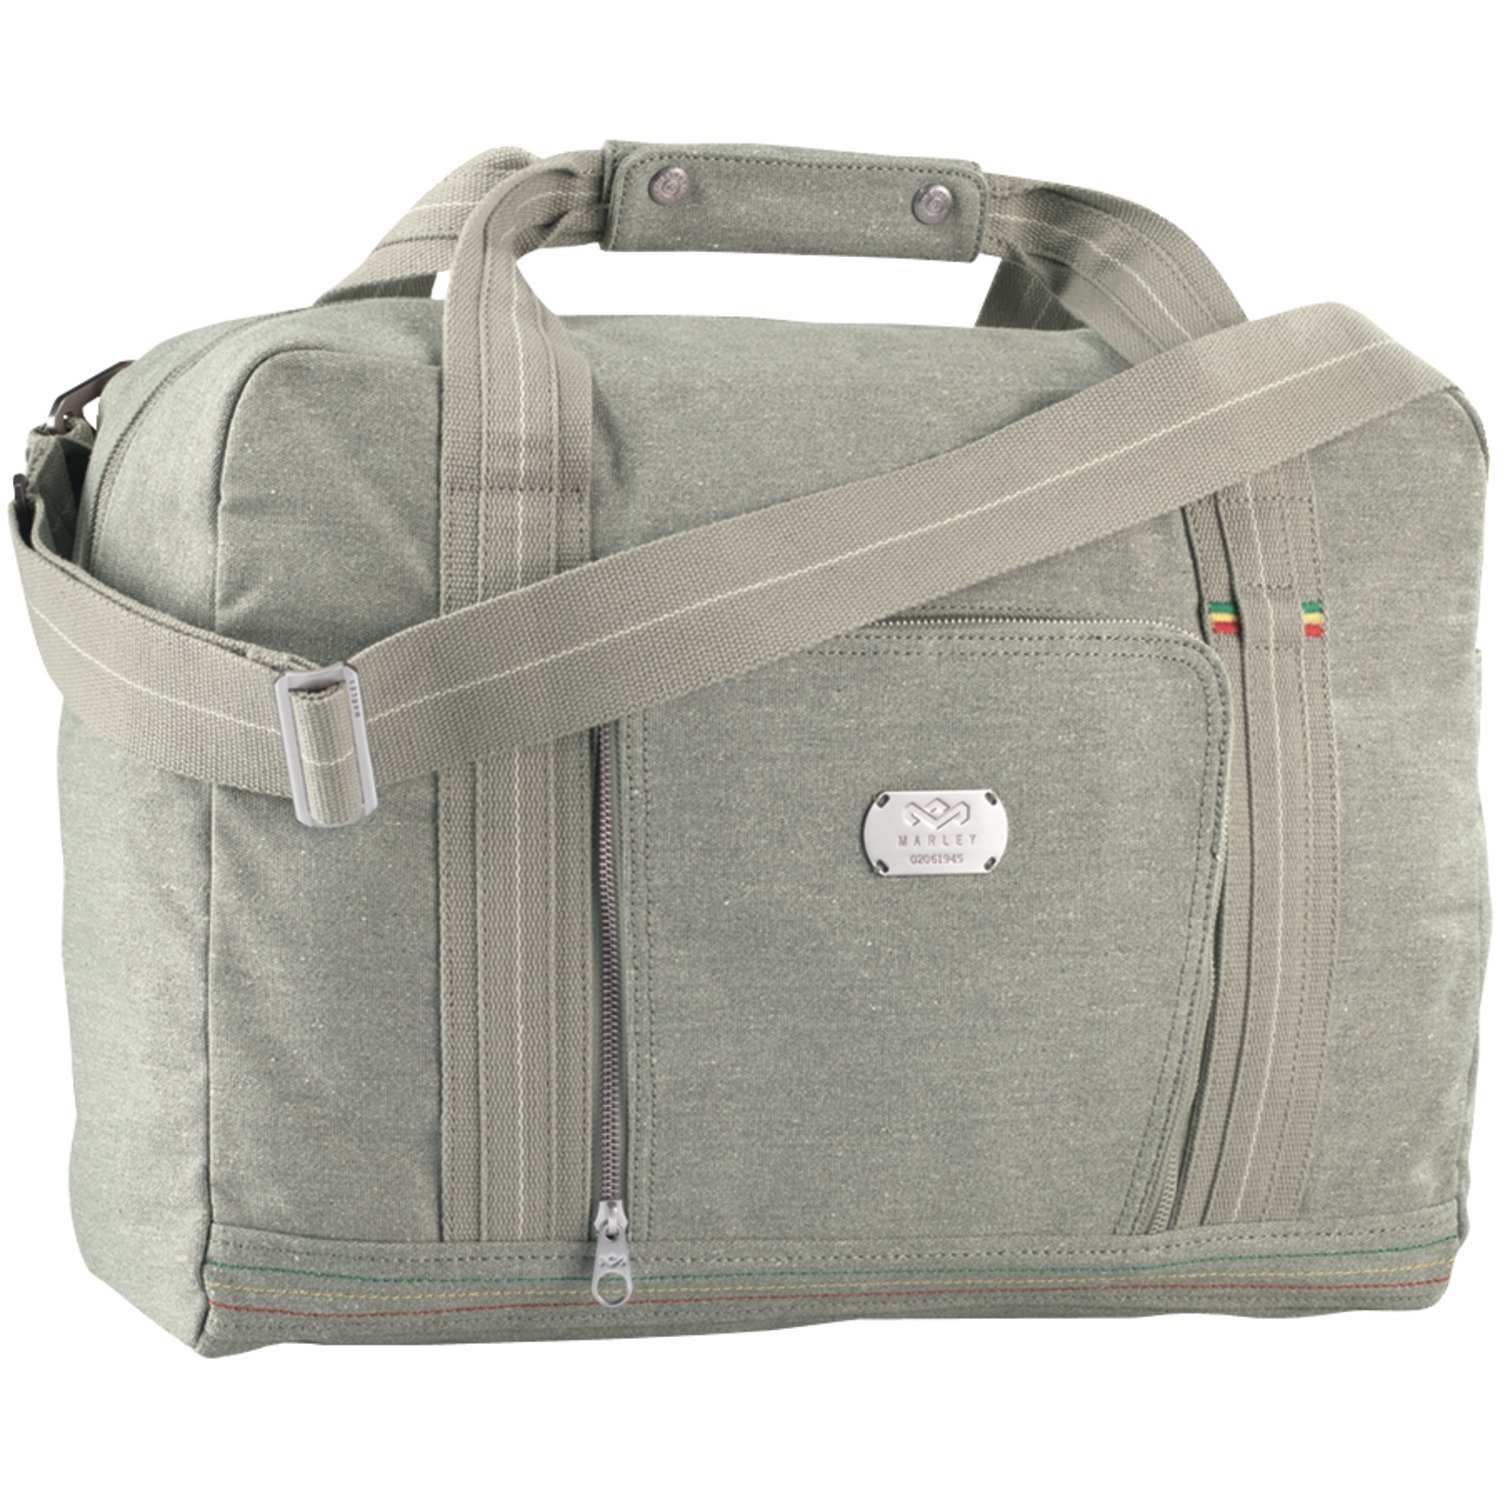 House of Marley, Lively Up Overnighter Bag, Padded External Laptop Pocket, 19.5in x 11.75in x 7.75in, Removable Shoulder Strap, Made of Hemp and Organic Cotton, BM-JD000-SM Mist